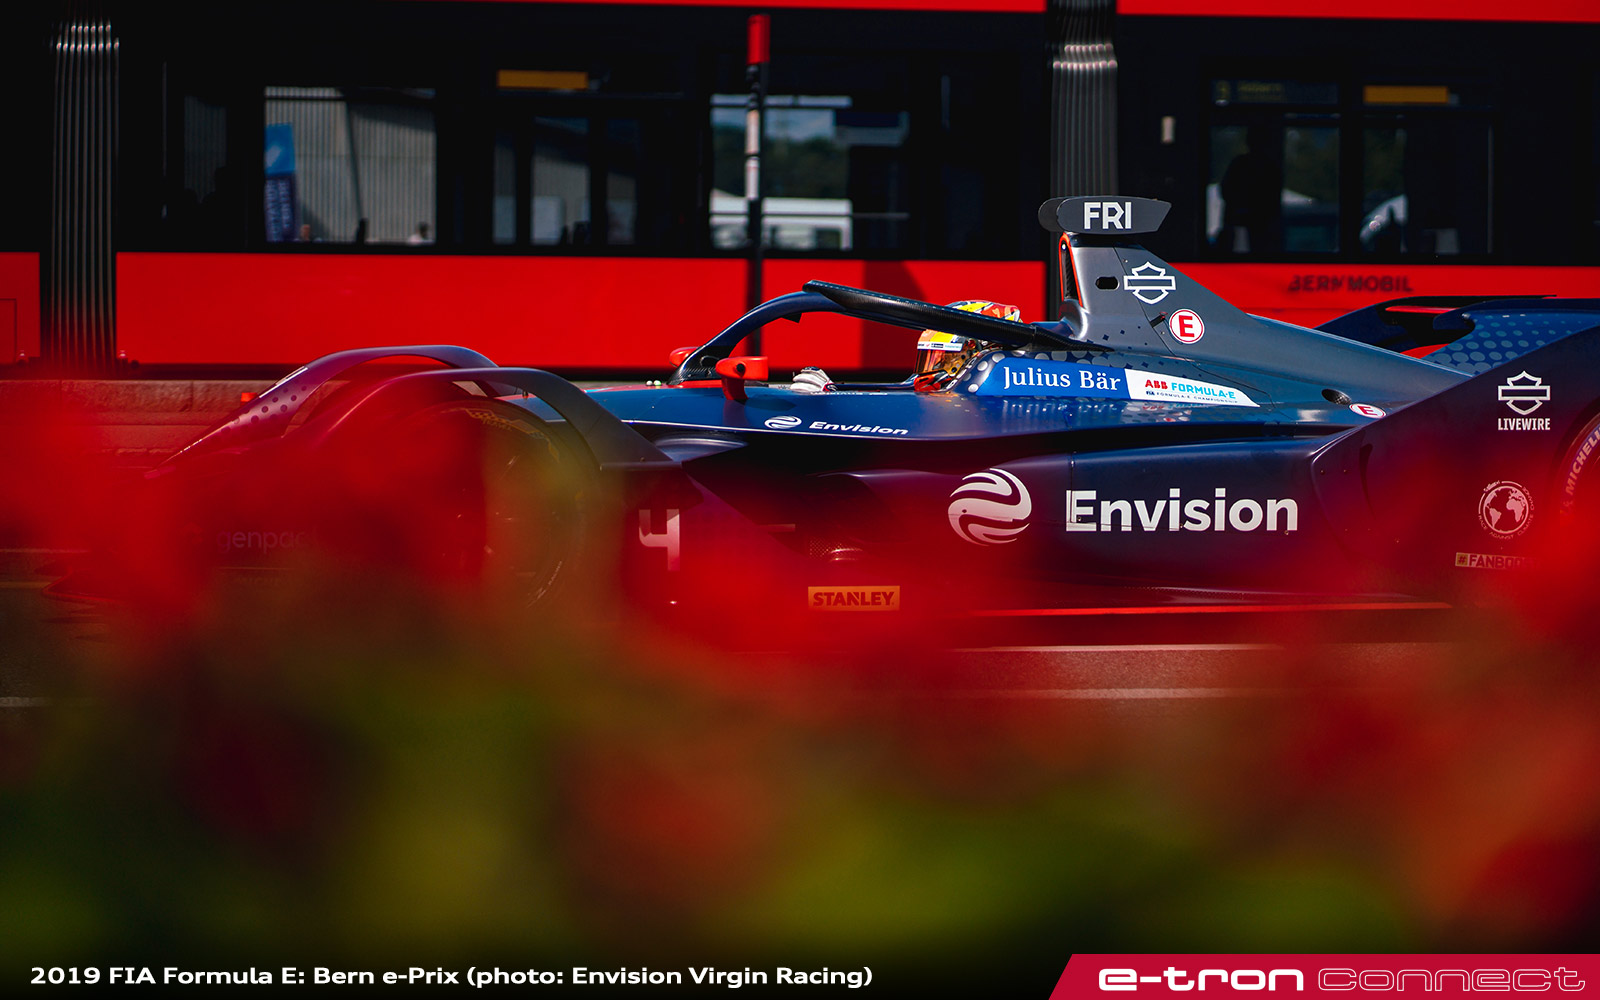 Tale of Two Halves for Envision Virgin Racing in Bern - e